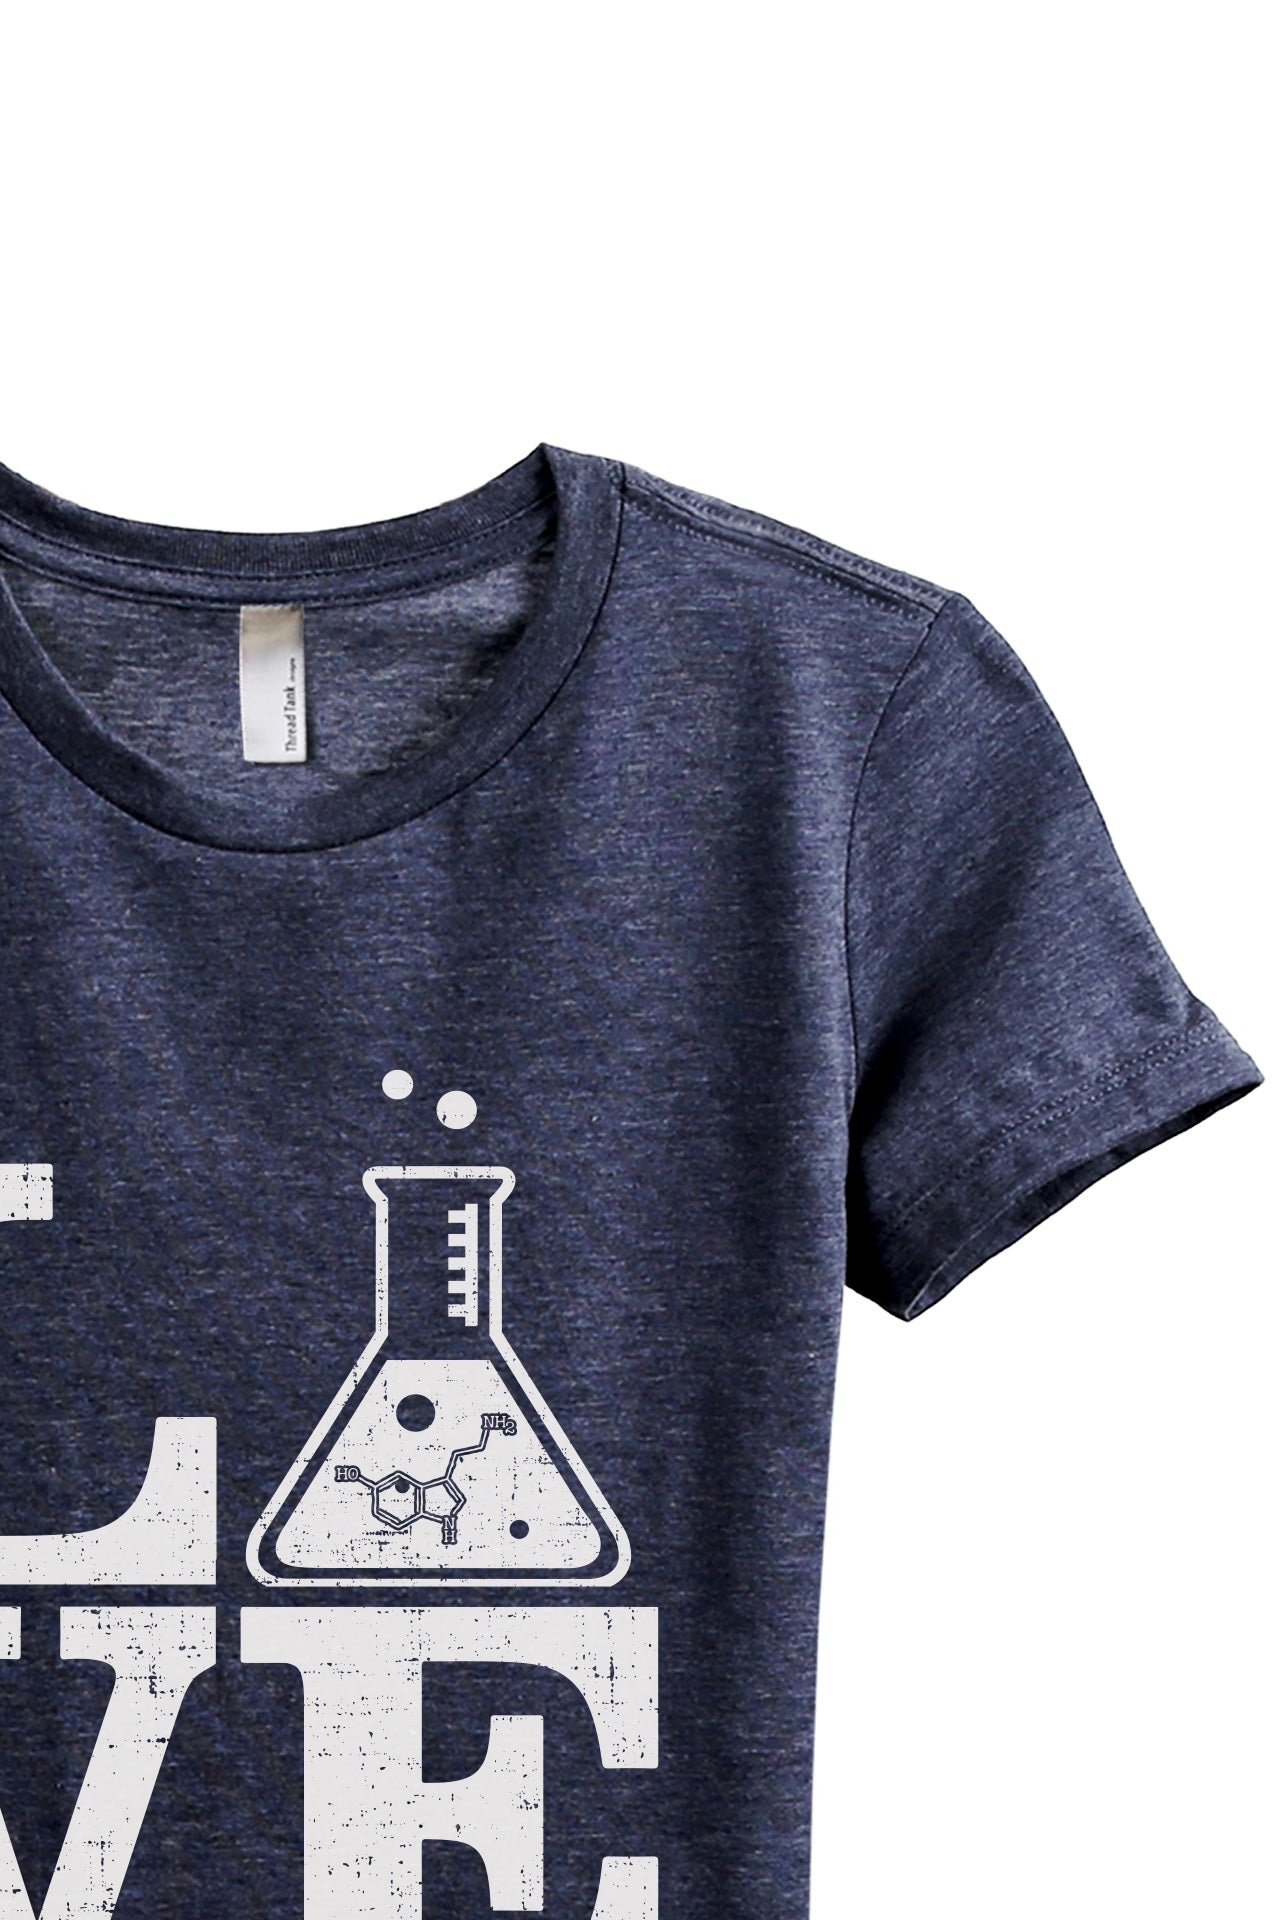 Teach Science LOVE Women's Relaxed Crewneck T-Shirt Top Tee Heather Navy